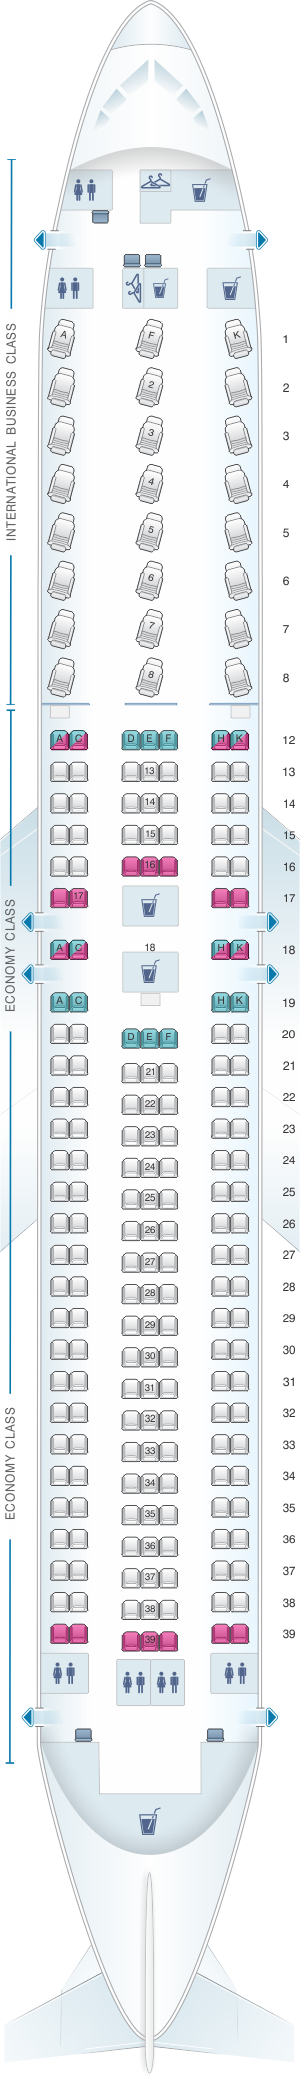 Air Canada Rouge 763 Seat Map Seat Map Air Canada Boeing B767 300ER (763) | SeatMaestro